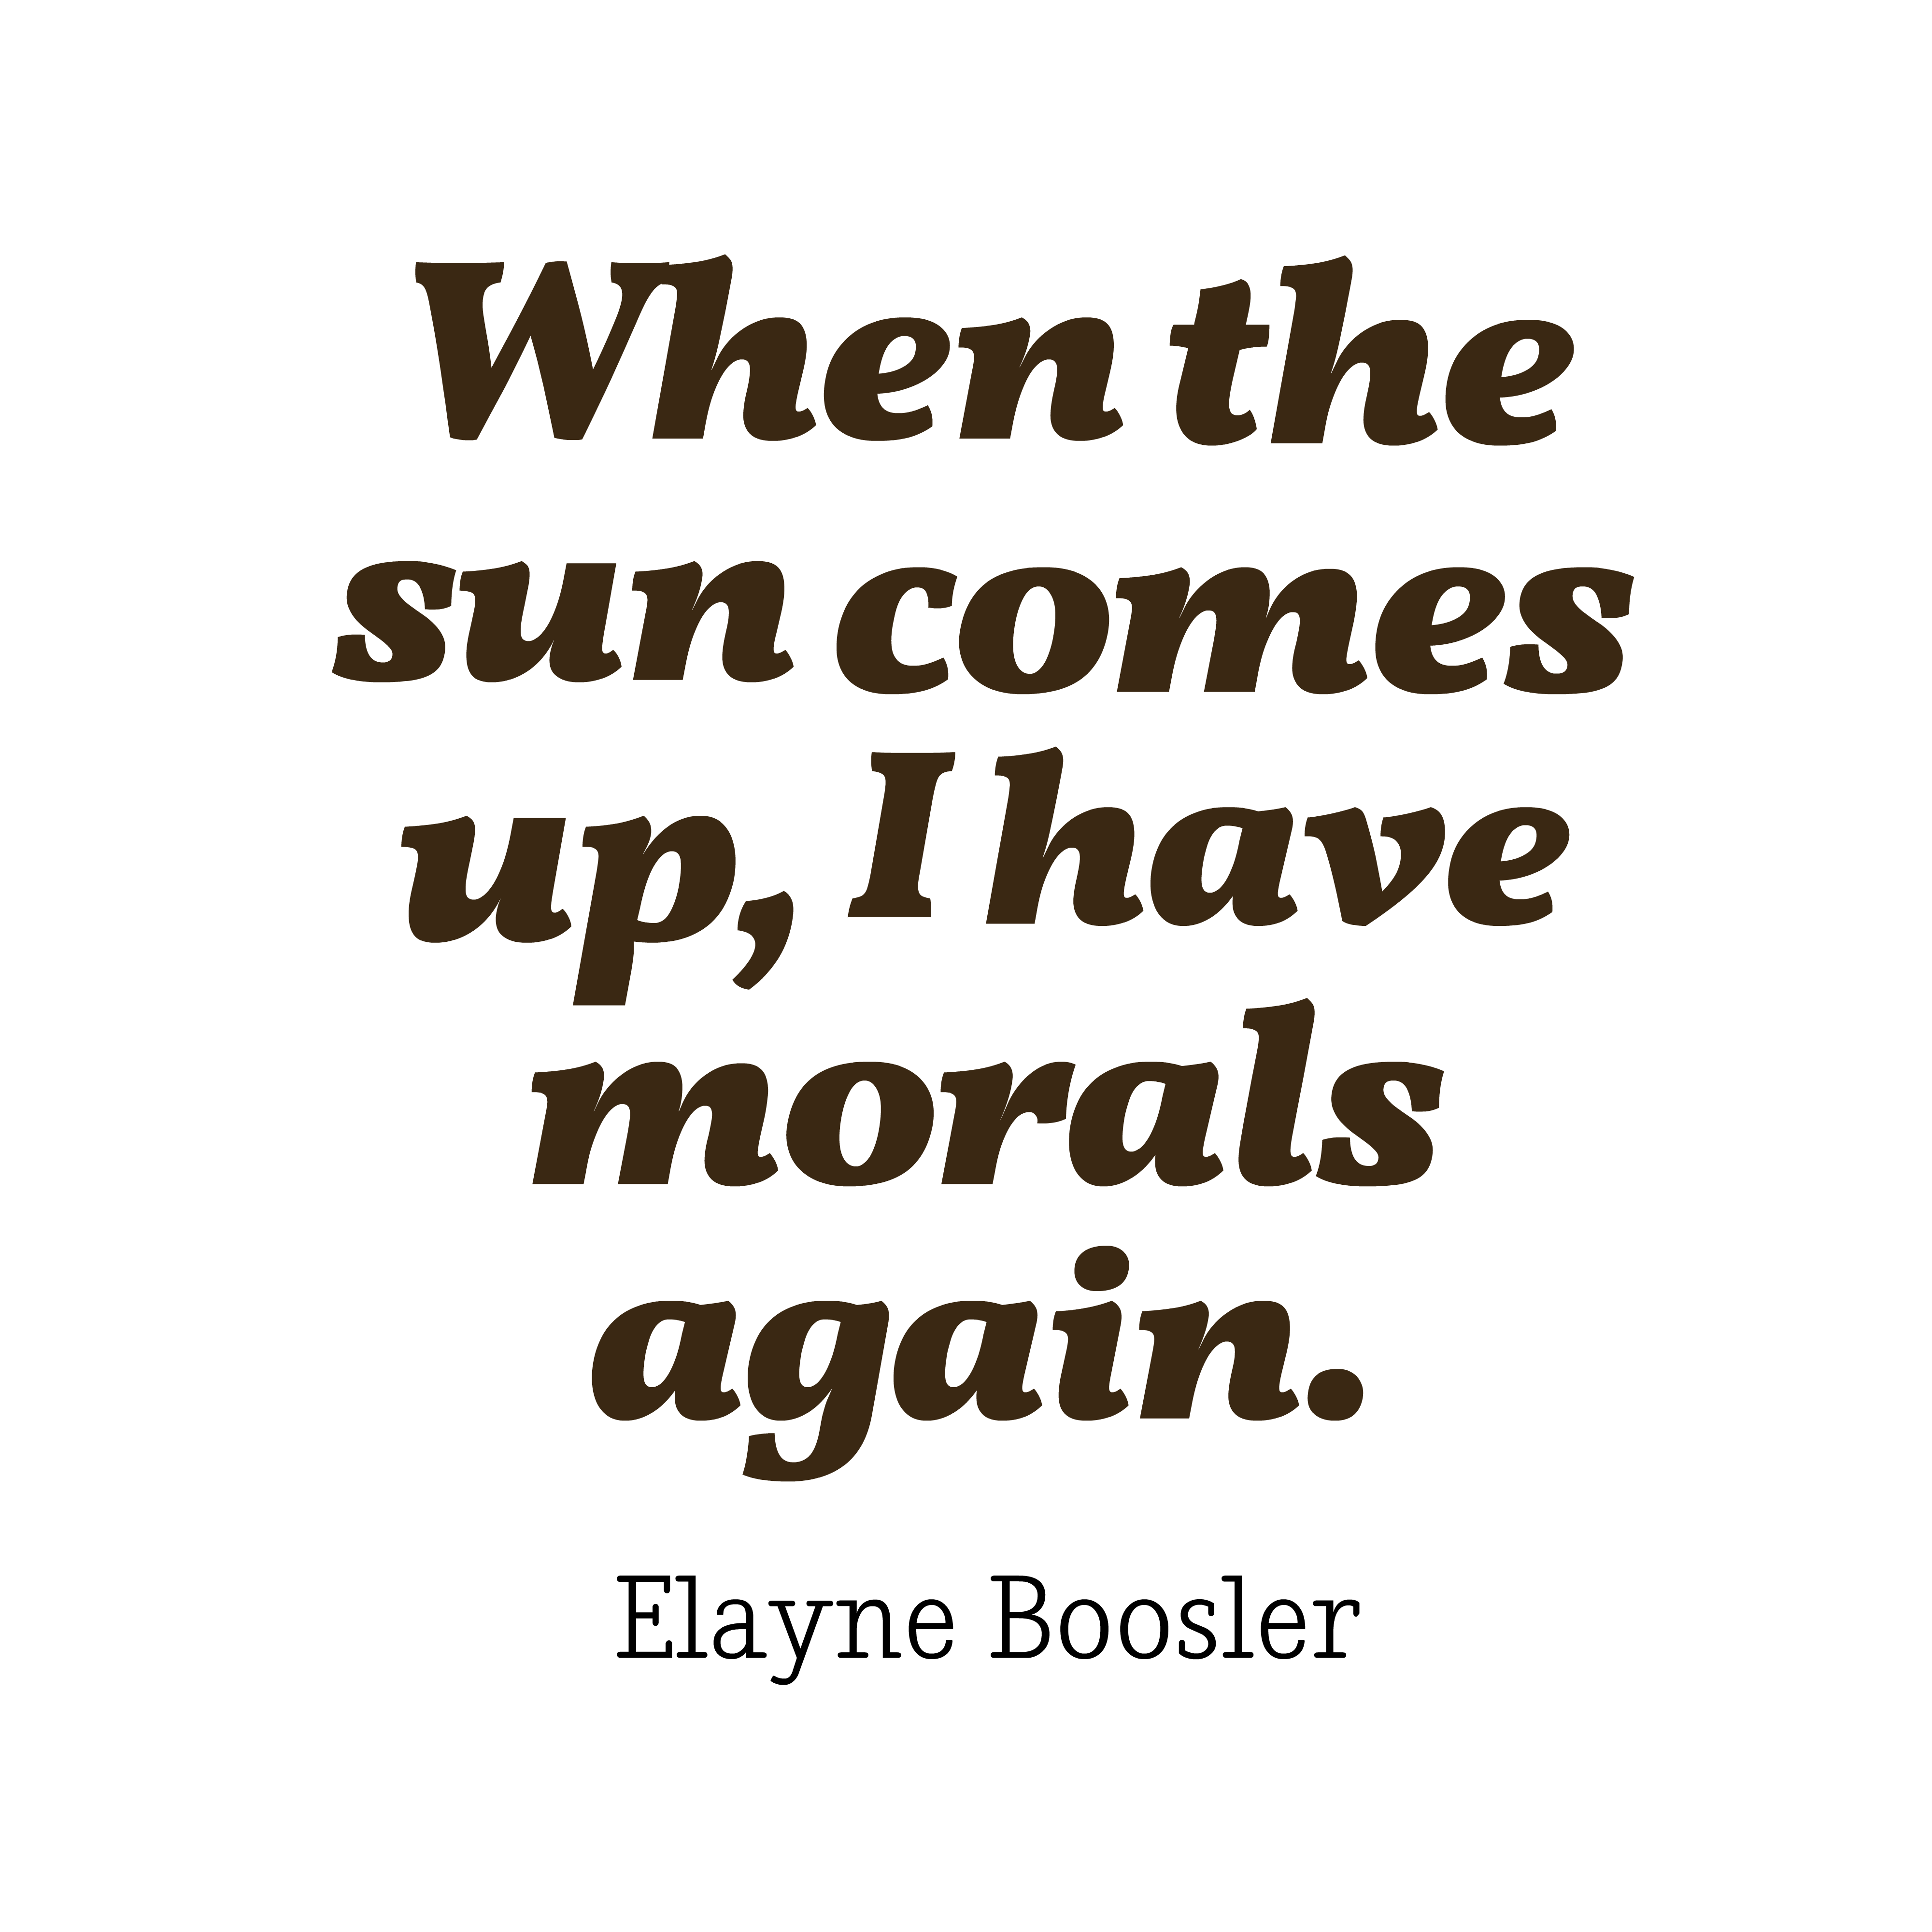 Elayne Boosler Quotes - BrainyQuote